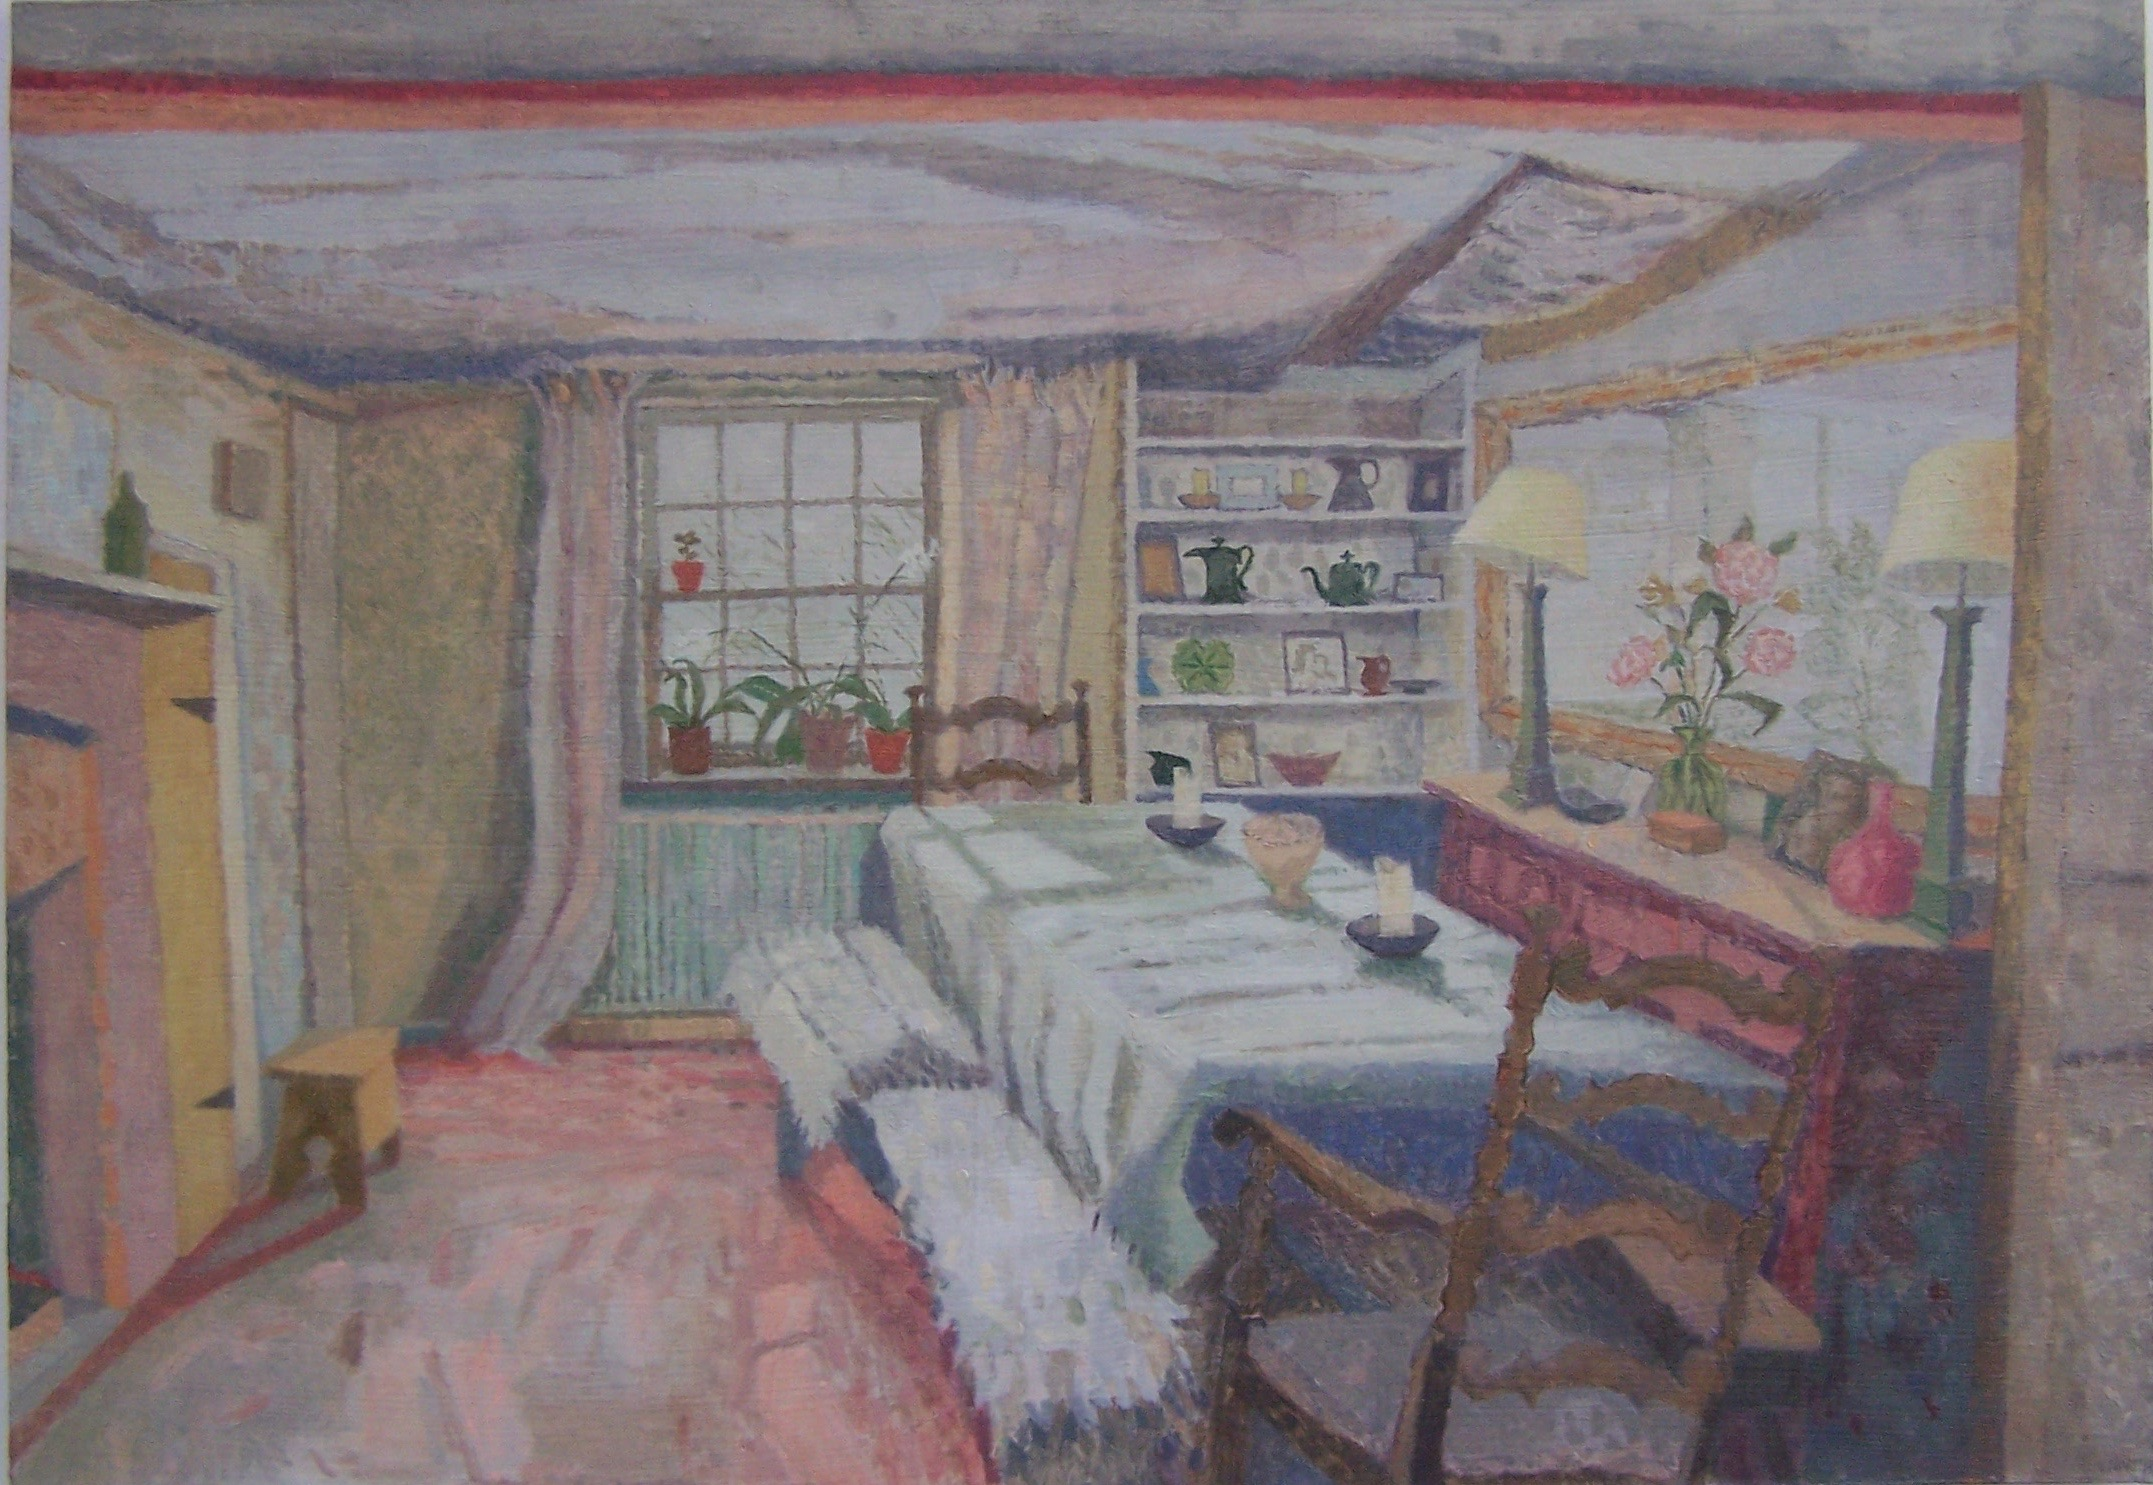 'Dining Room at Victoria's', 2018, oil on gesso panel